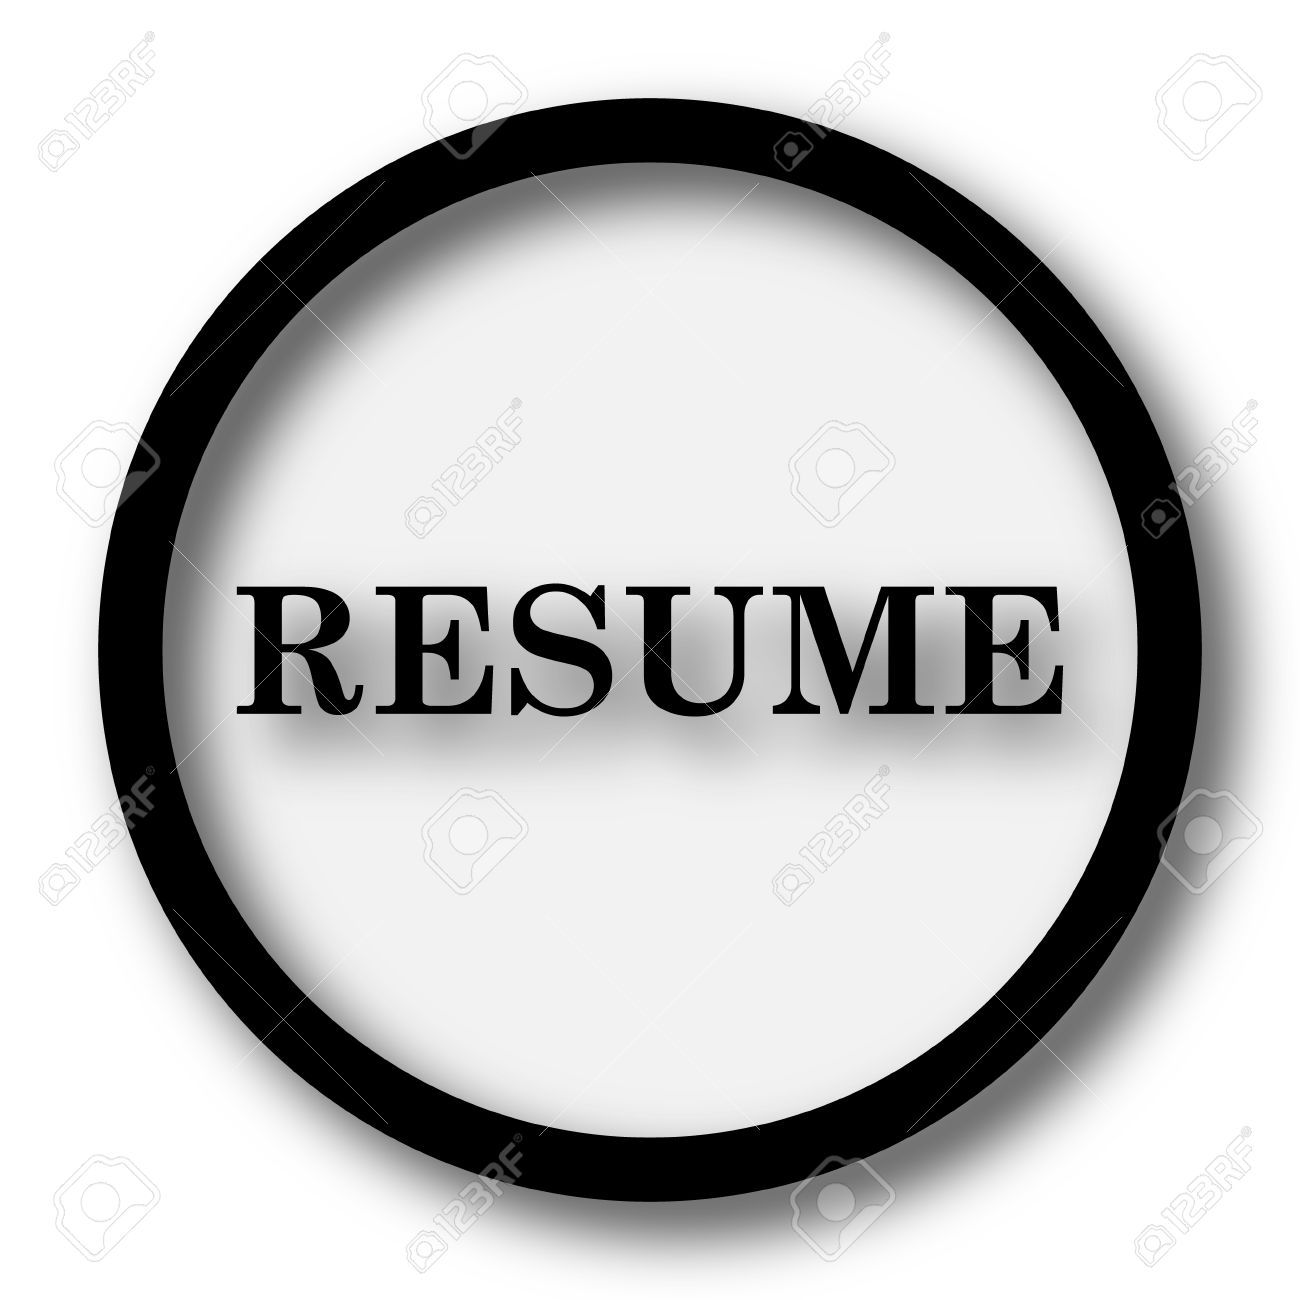 resume icon internet button on white background stock photo resume icon internet button on white background stock photo 47322617